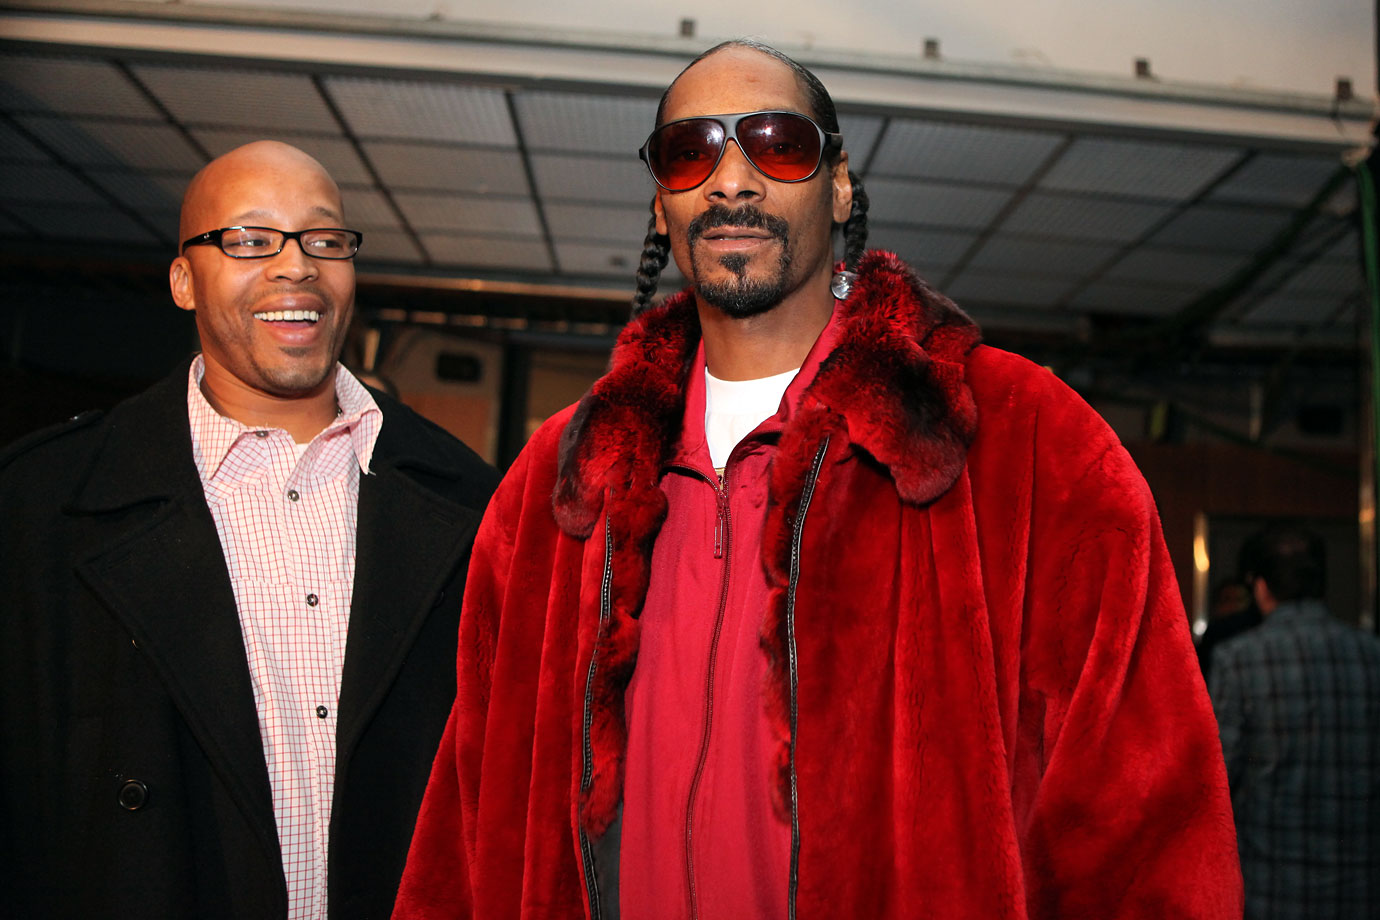 Snoop Dogg attends the NBA All-Star Game on Feb. 20, 2011 at Staples Center in Los Angeles.